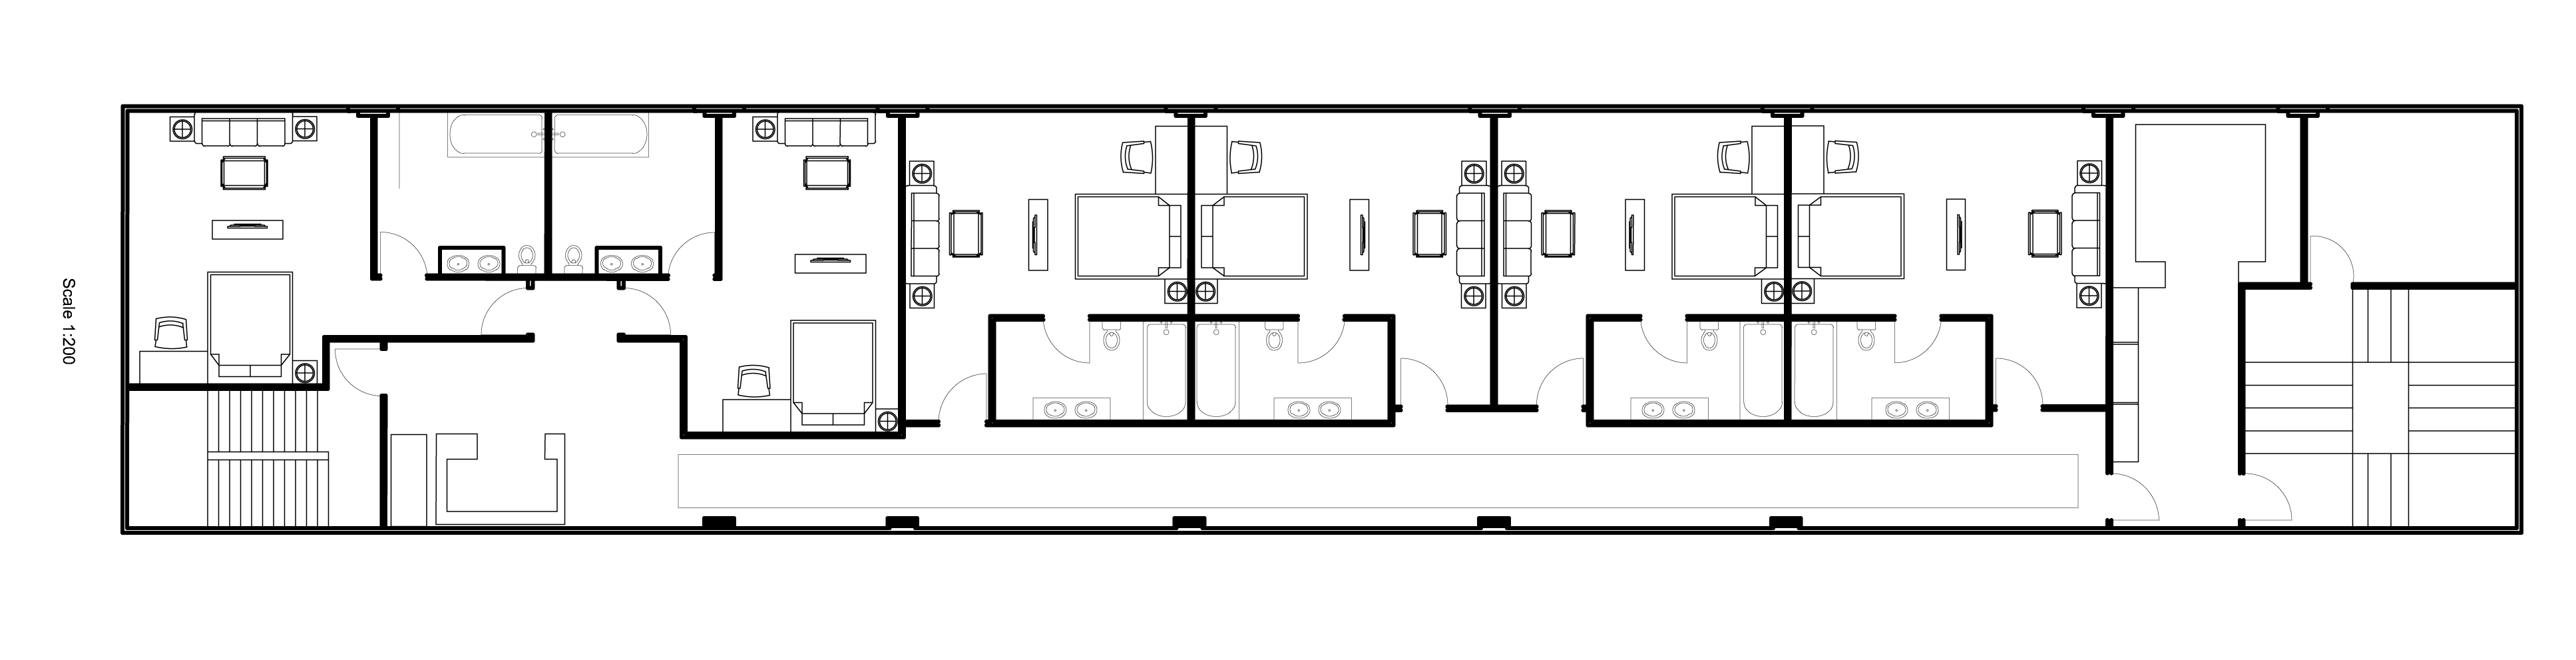 FileFloor Plan Of Hotel Roomsjpg Wikimedia Commons